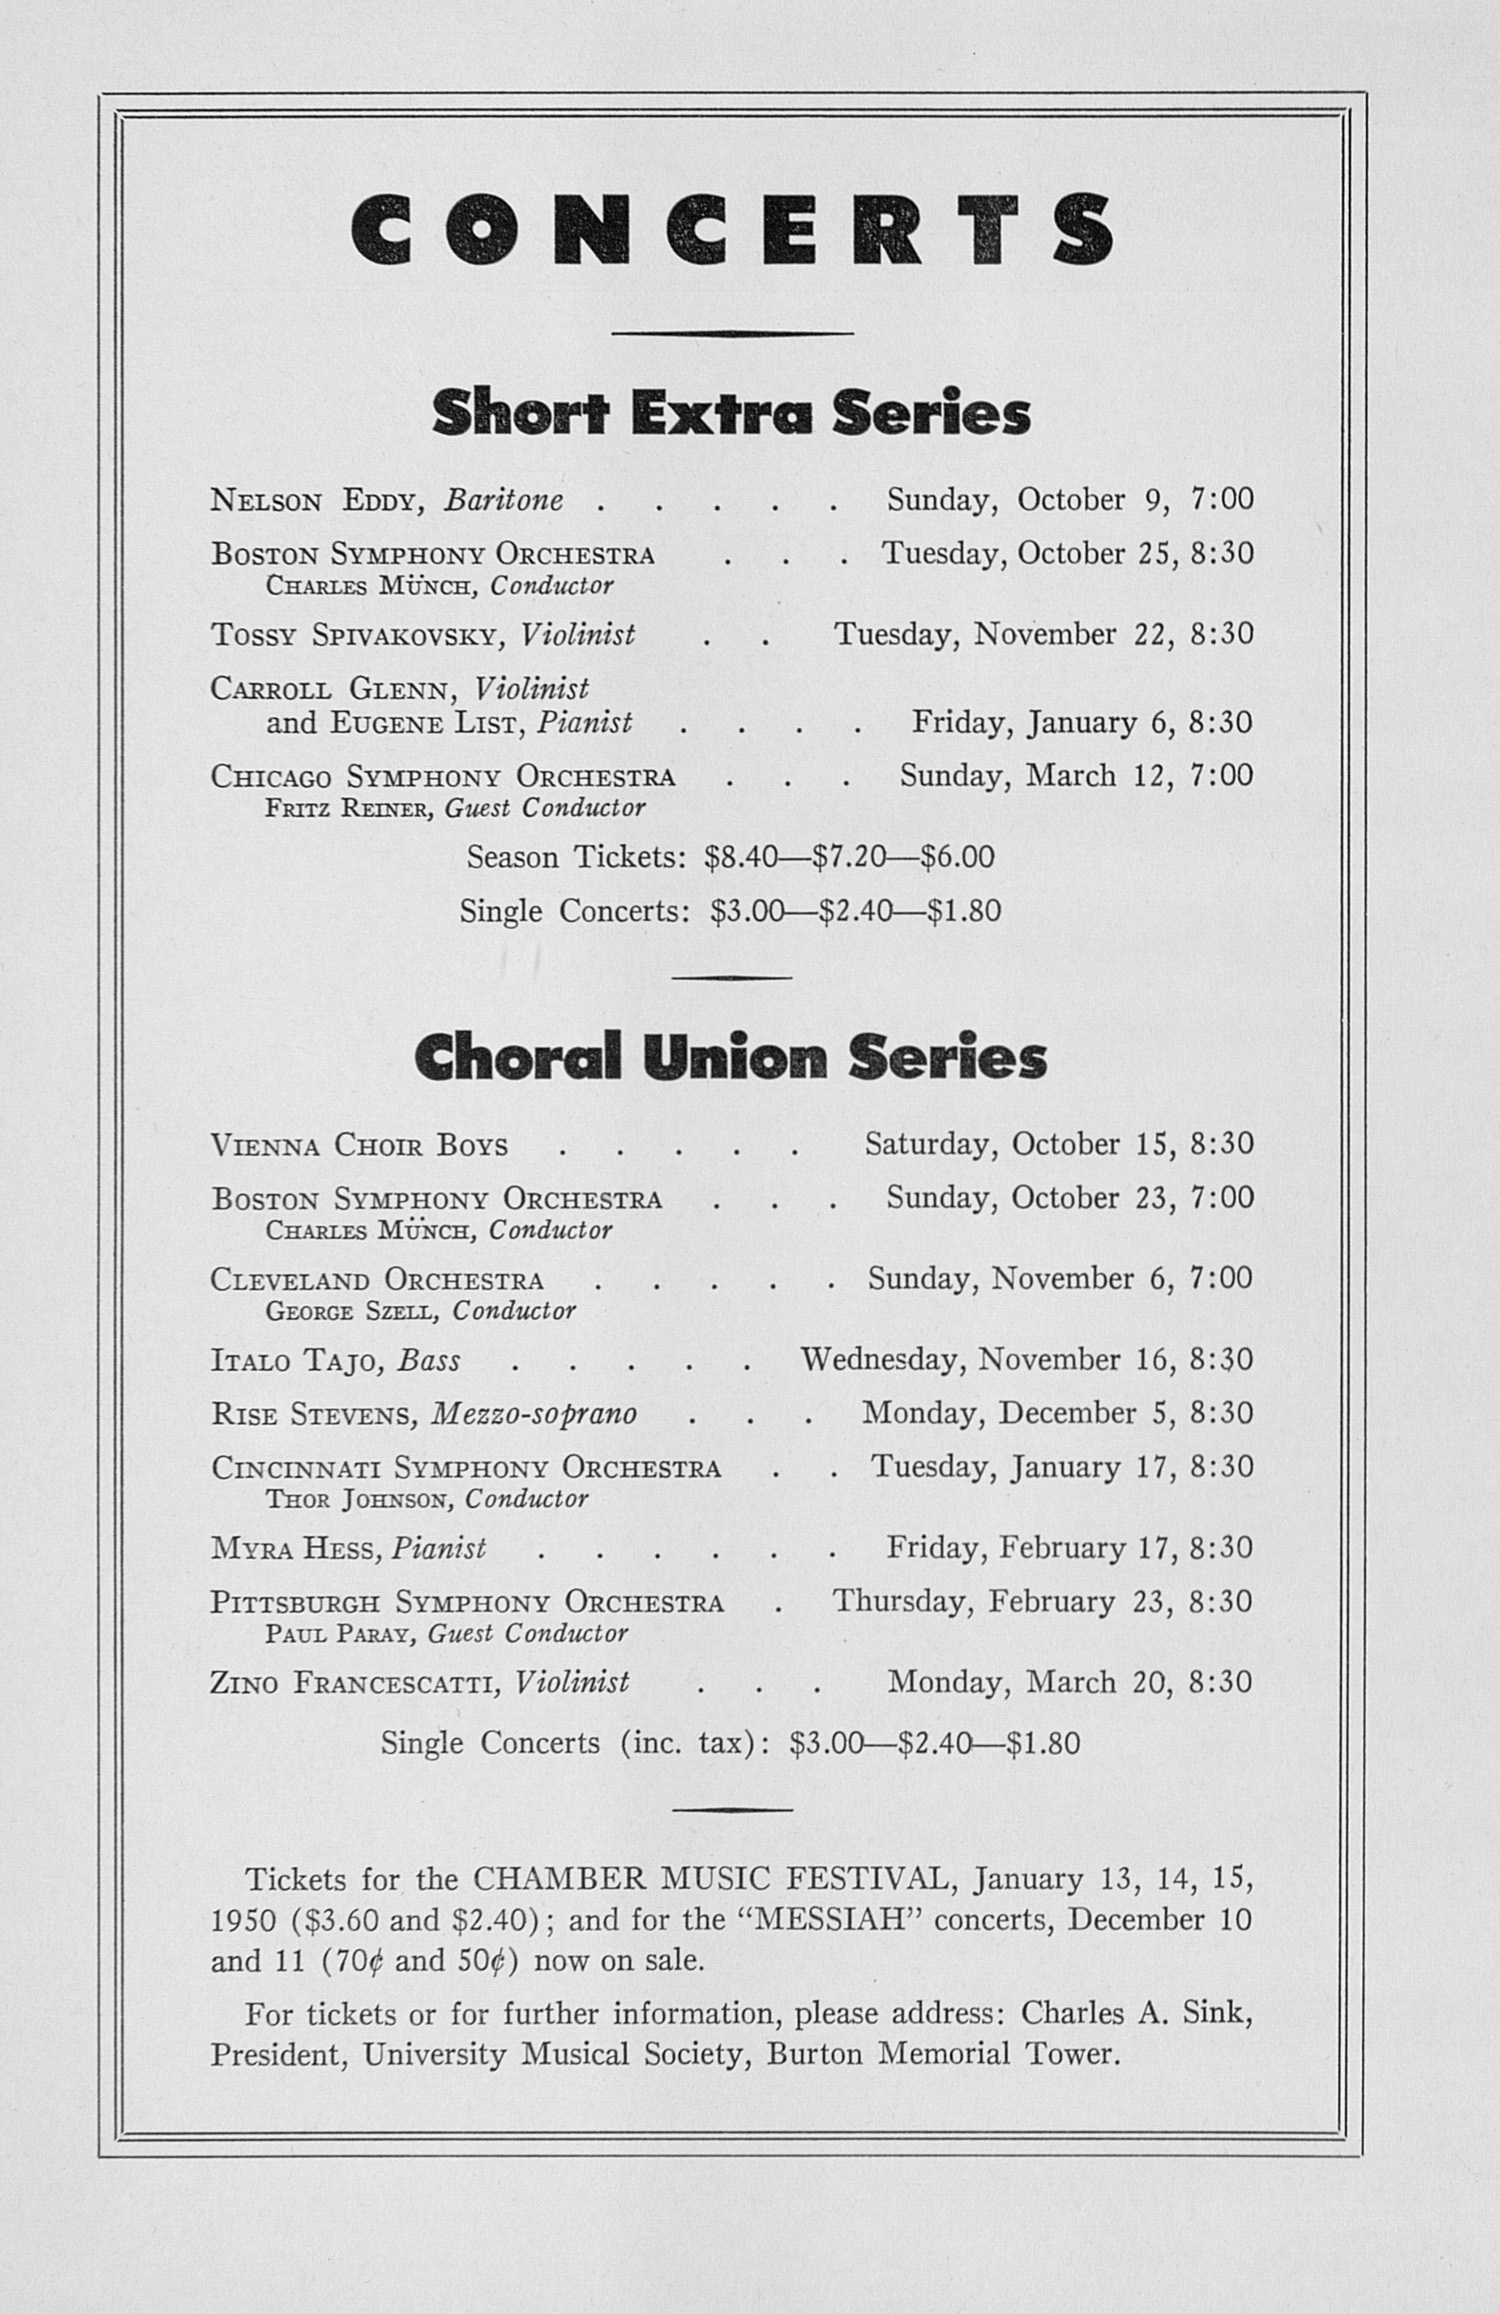 UMS Concert Program, October 4, 1949: Seventy-first Annual Choral Union Concert Series -- Artur Rubinstein image